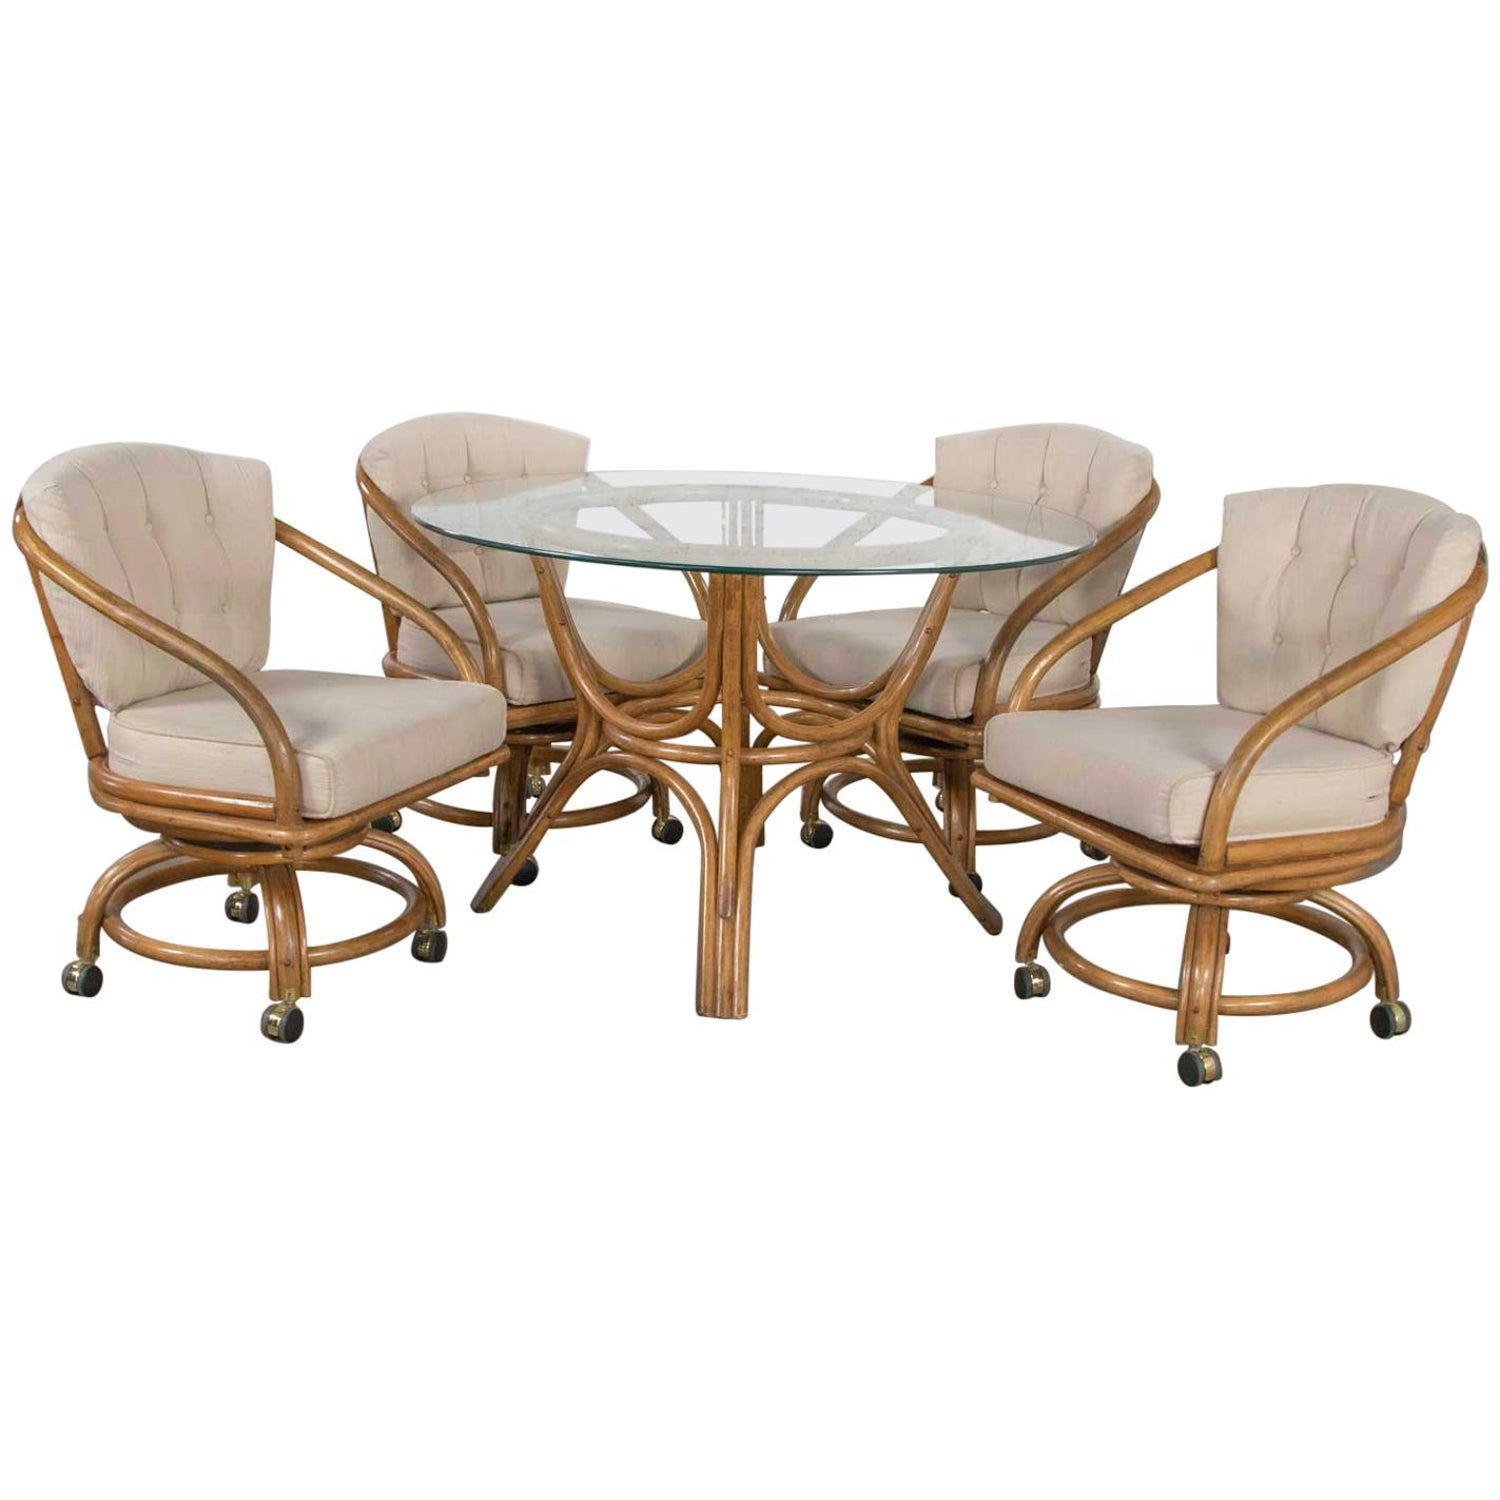 Vintage Rattan Game Table Set Round Glass Top Table And 4 Swivel Rolling Chairs For Sale At 1stdibs